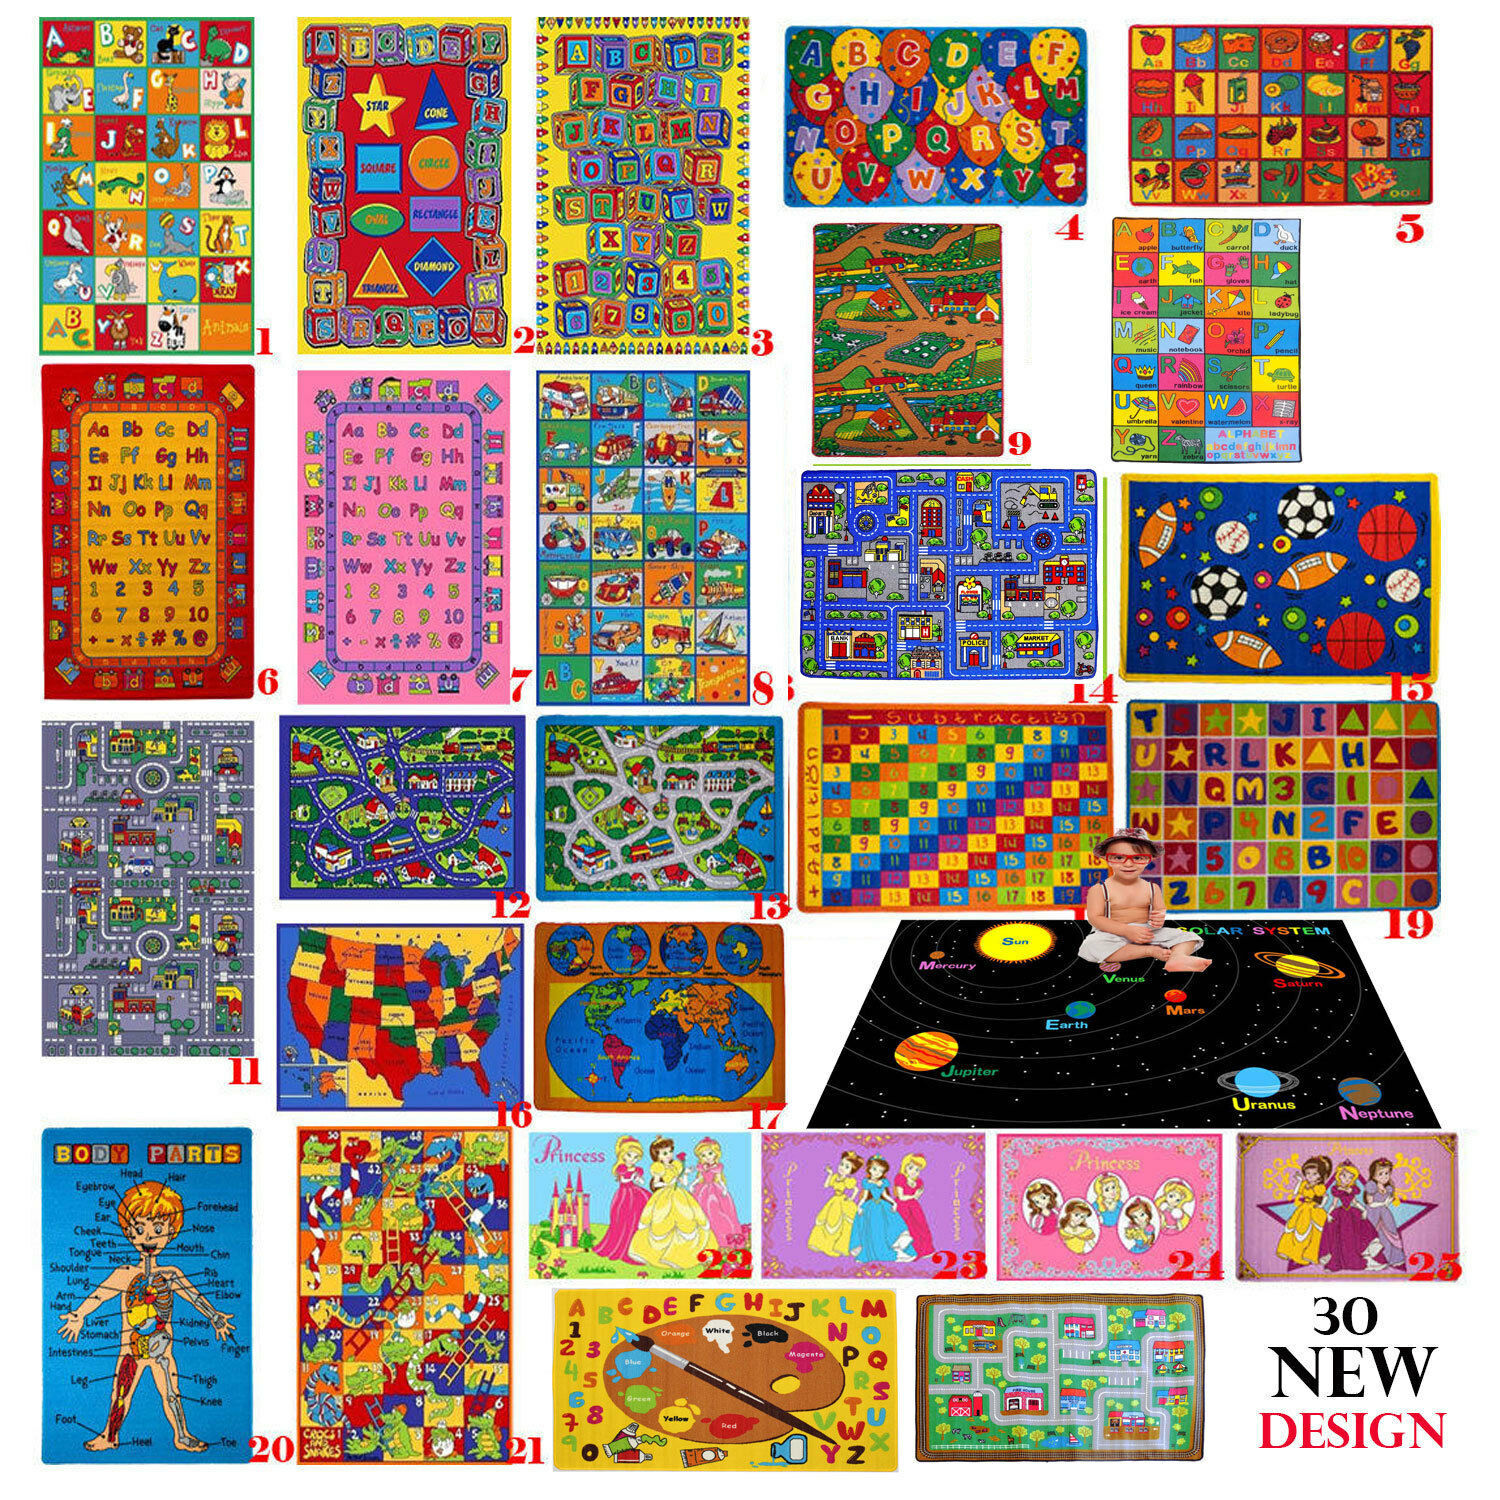 Купить KIDS CHILDREN SCHOOL CLASSROOM BEDROOM EDUCATIONAL RUG NON SKID GEL RUG (30 new)